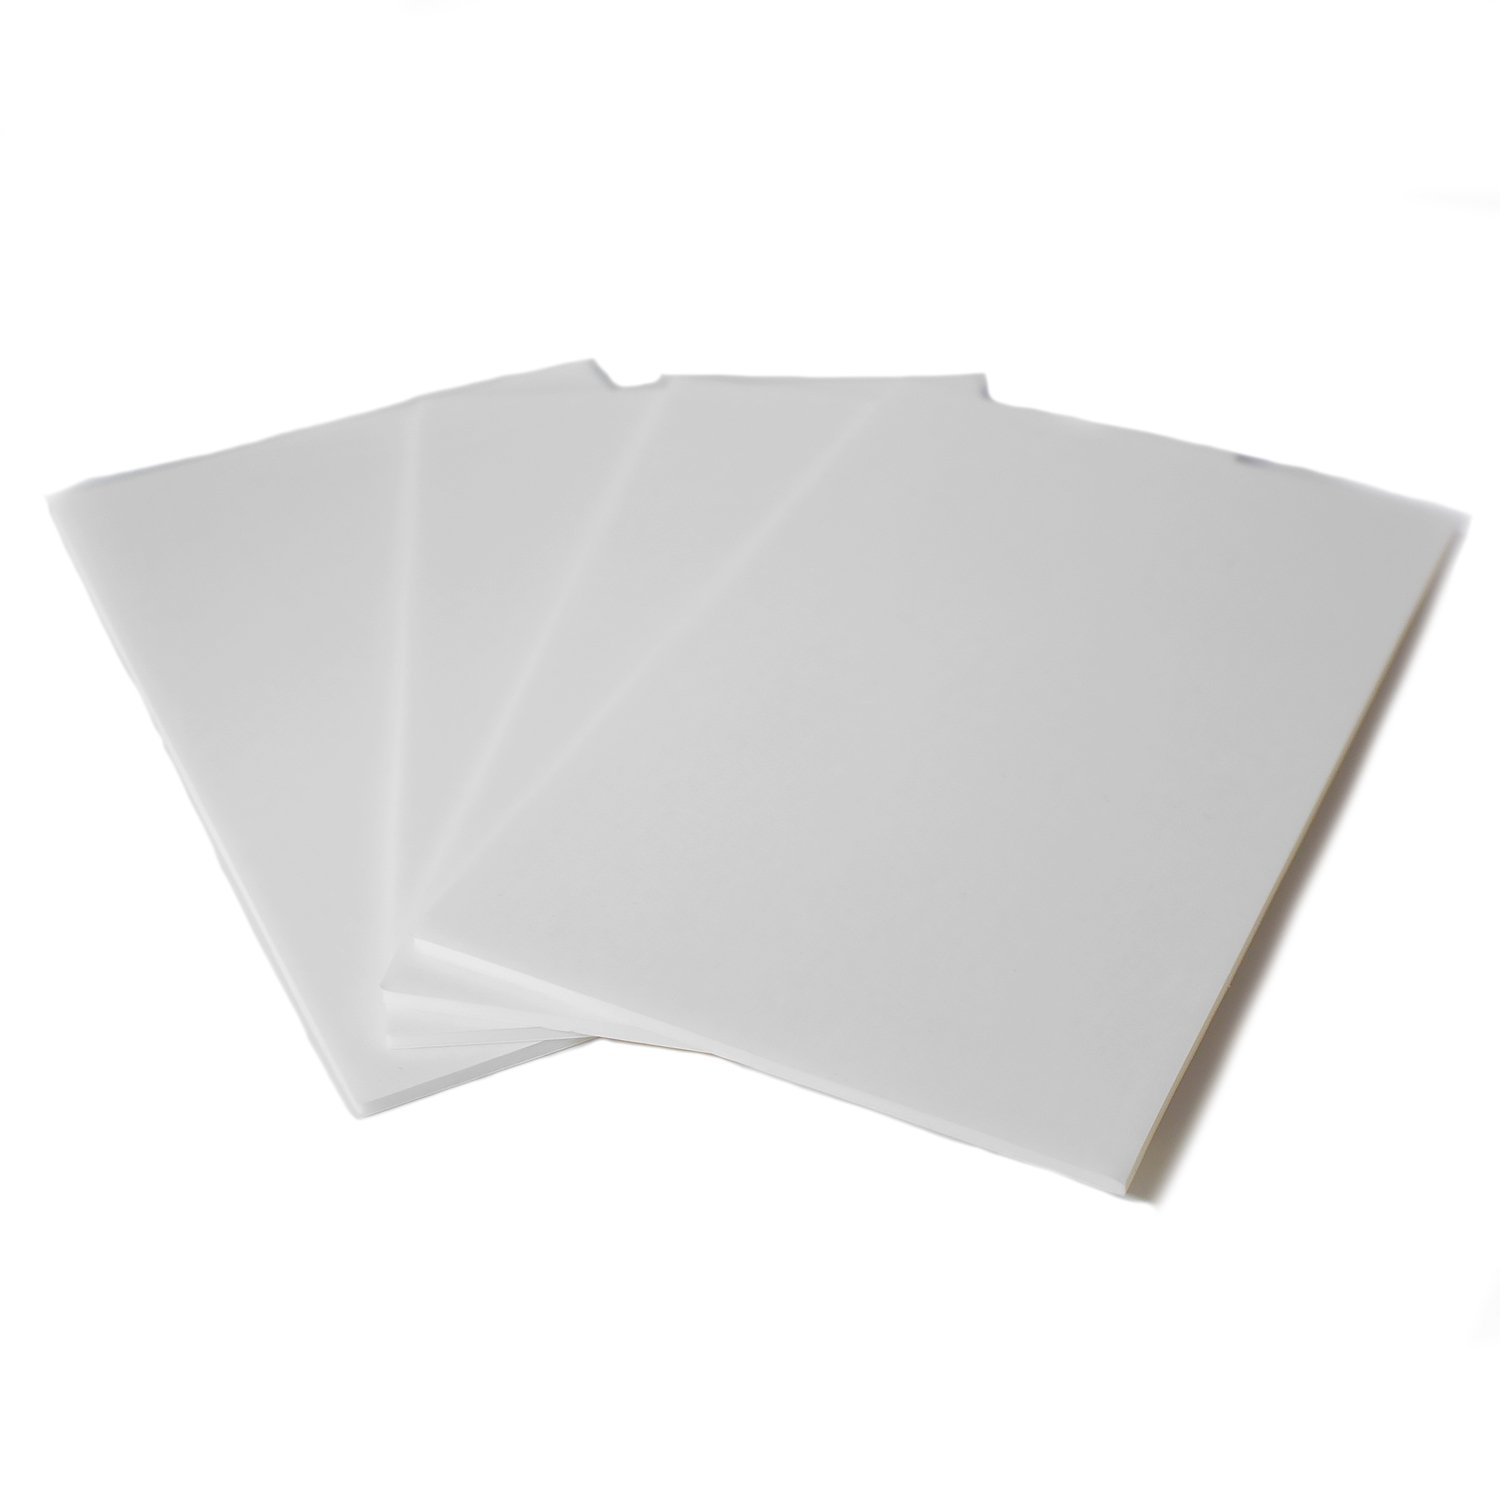 Adhesive Craft Foam Sheets